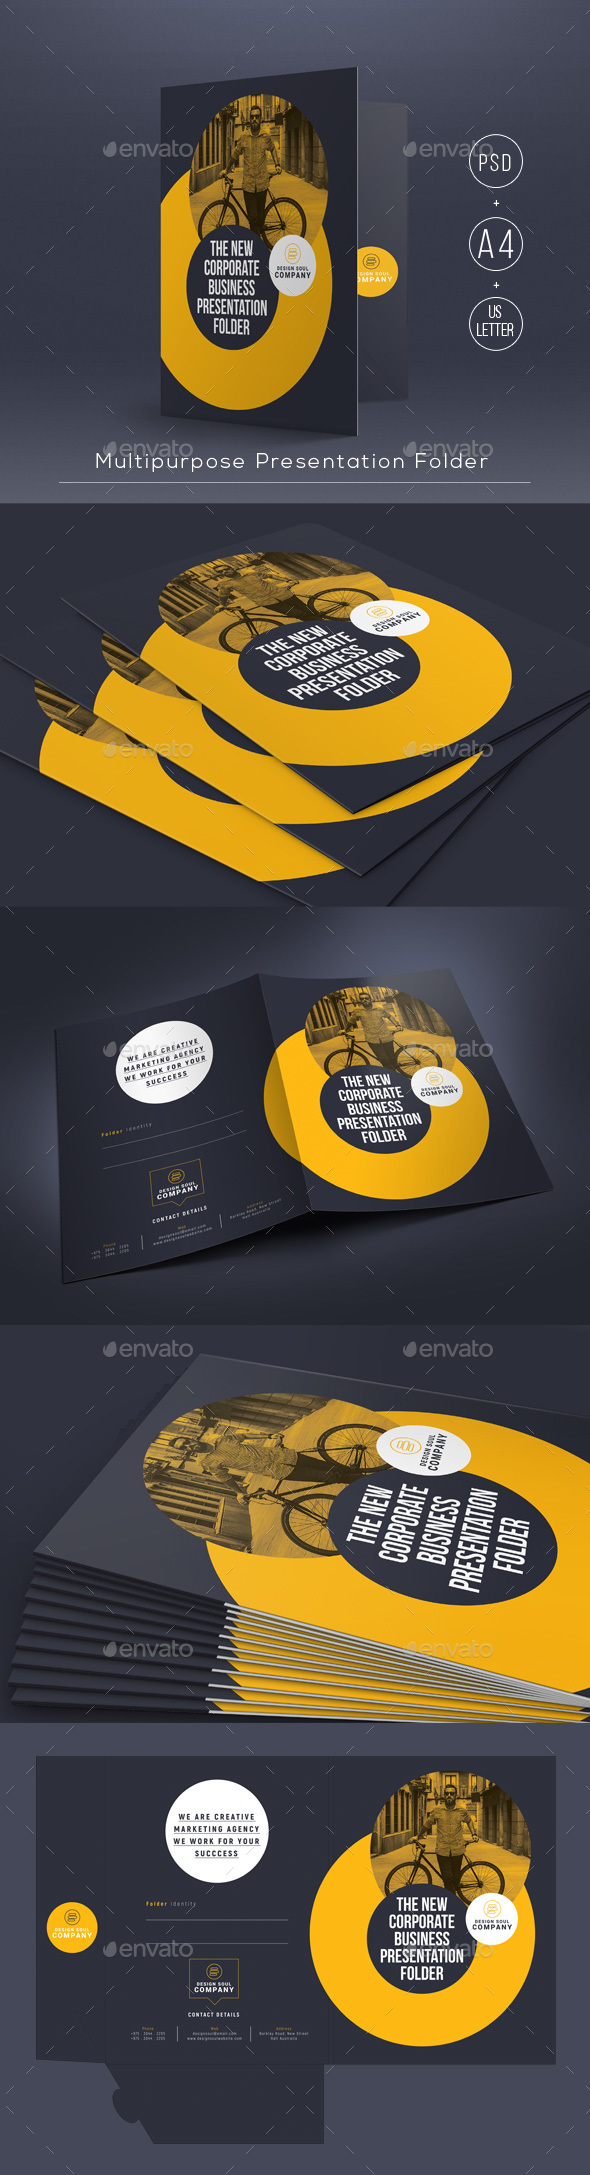 Multipurpose Presentation Folder - Stationery Print Templates